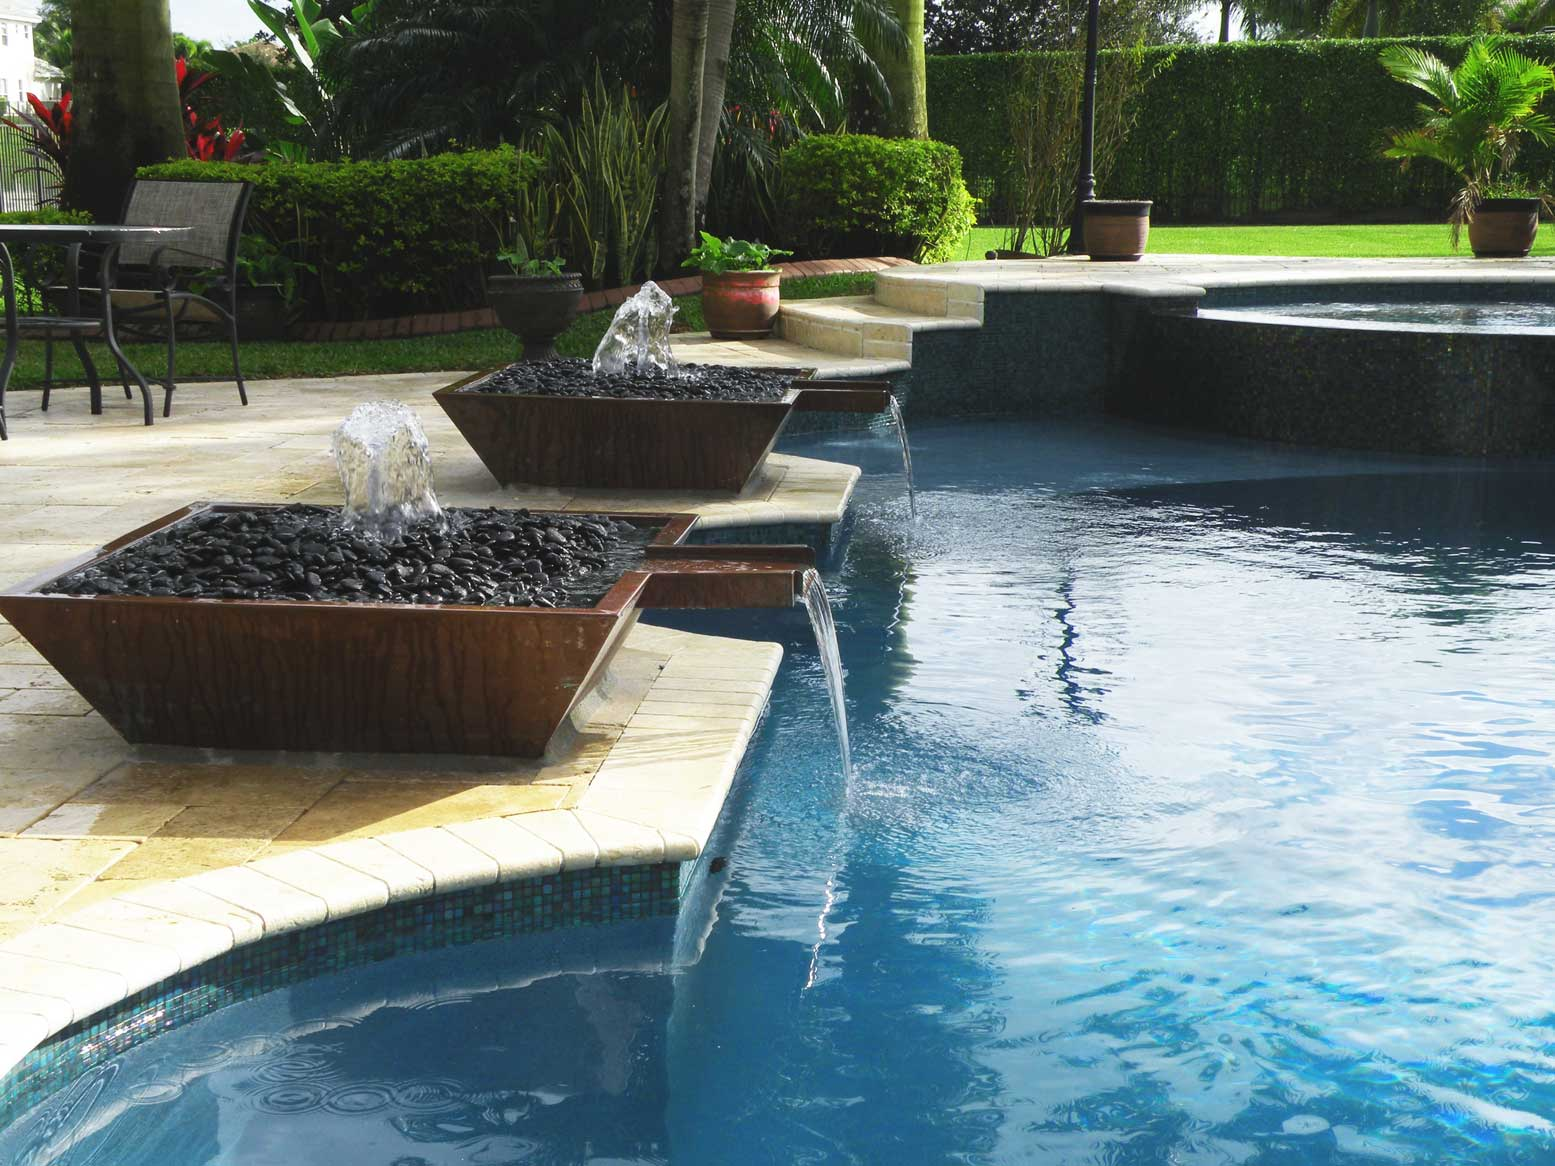 Outdoor swimming pool water fountain design ideas home for Pool exterior design